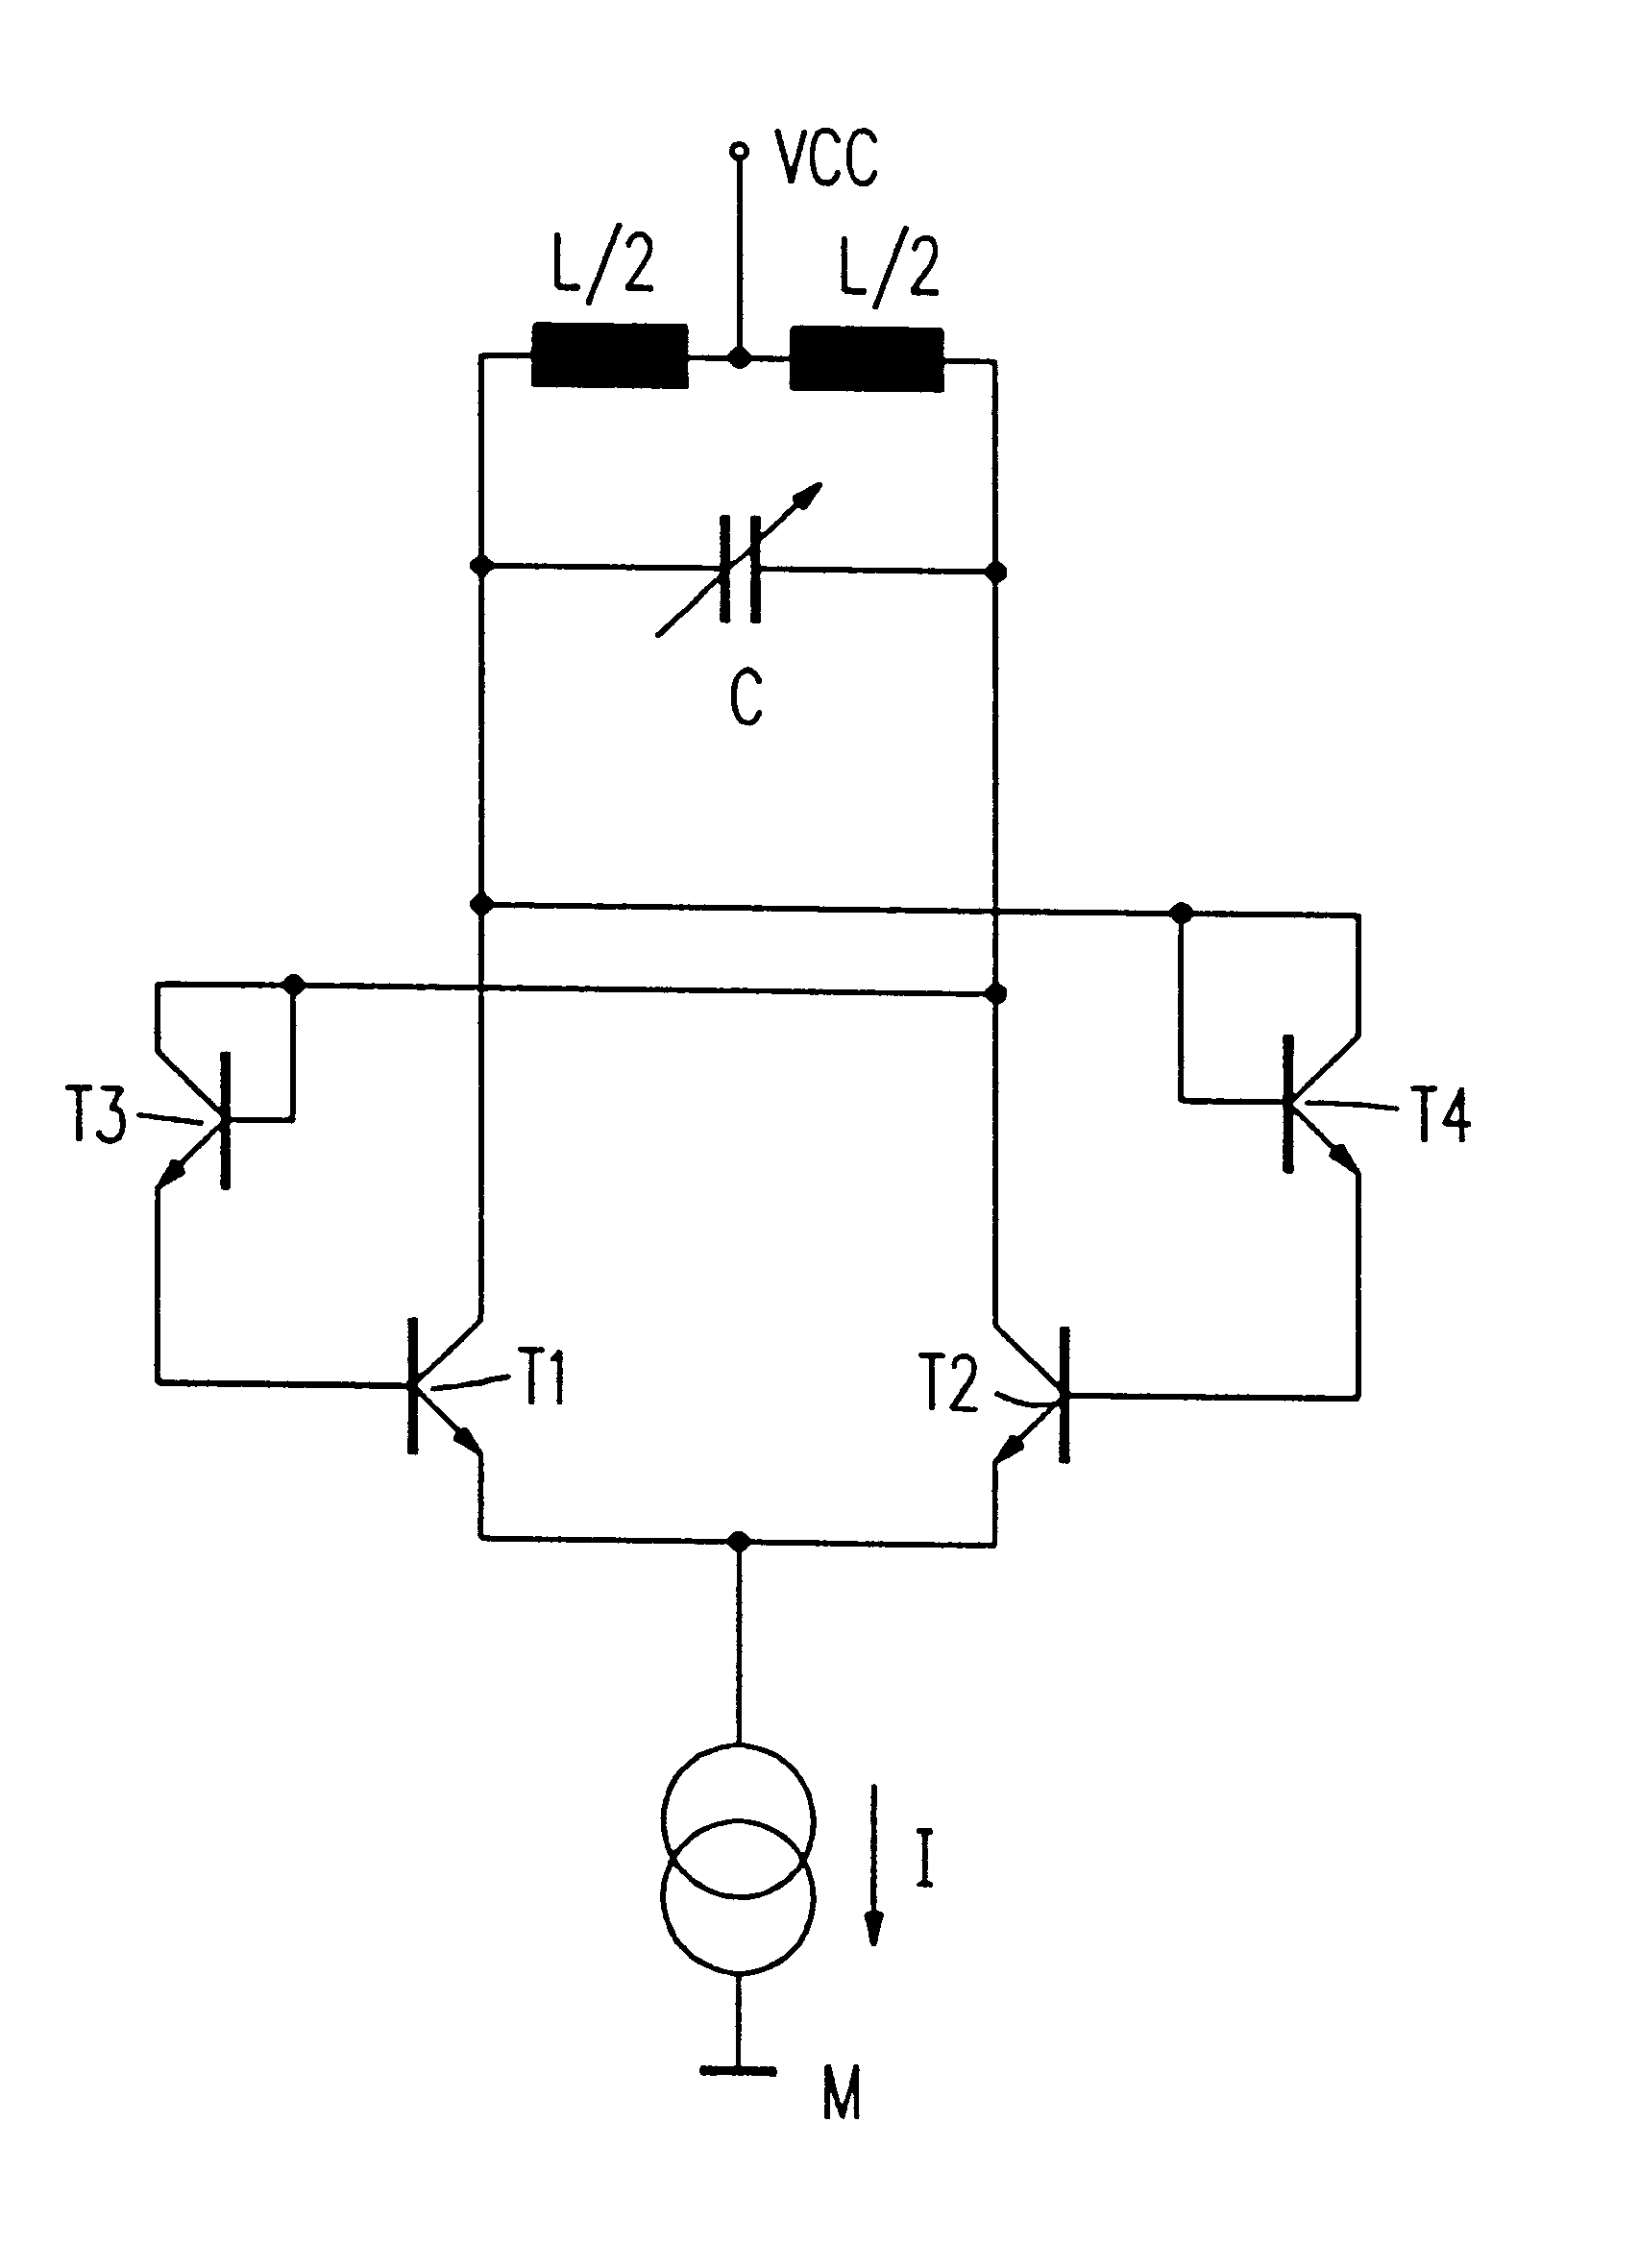 Us6198359 Oscillator With Cross Coupling By Diodes Pushpull Circuit Oscillatorcircuit Signalprocessing Patent Drawing